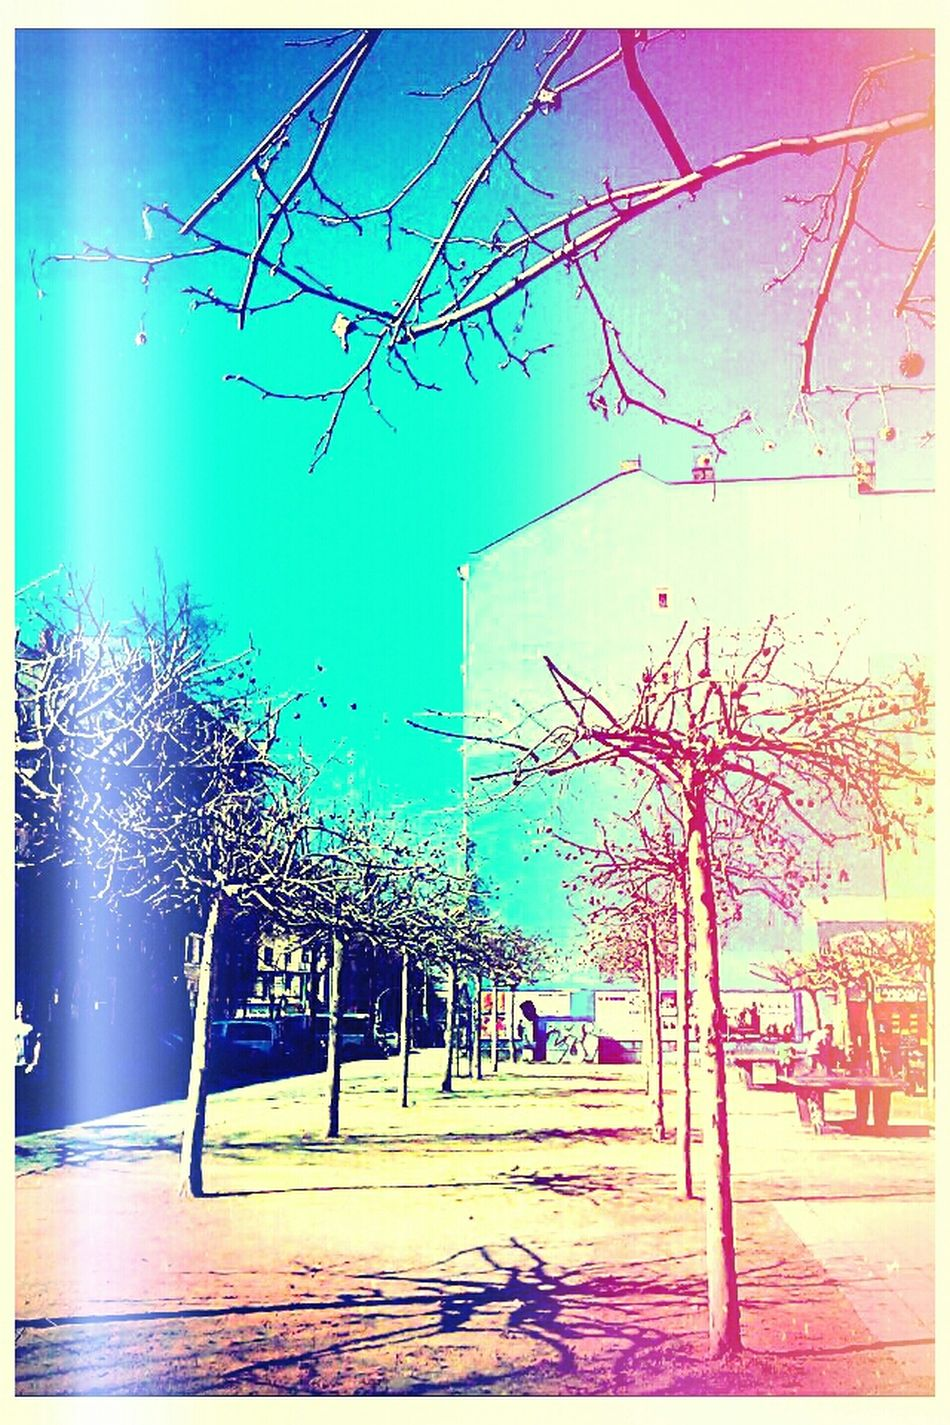 Walking Around Streetphotography Nature Sky Landscape Enjoying The Sun On The Road Blue Building Pink Urban Nature